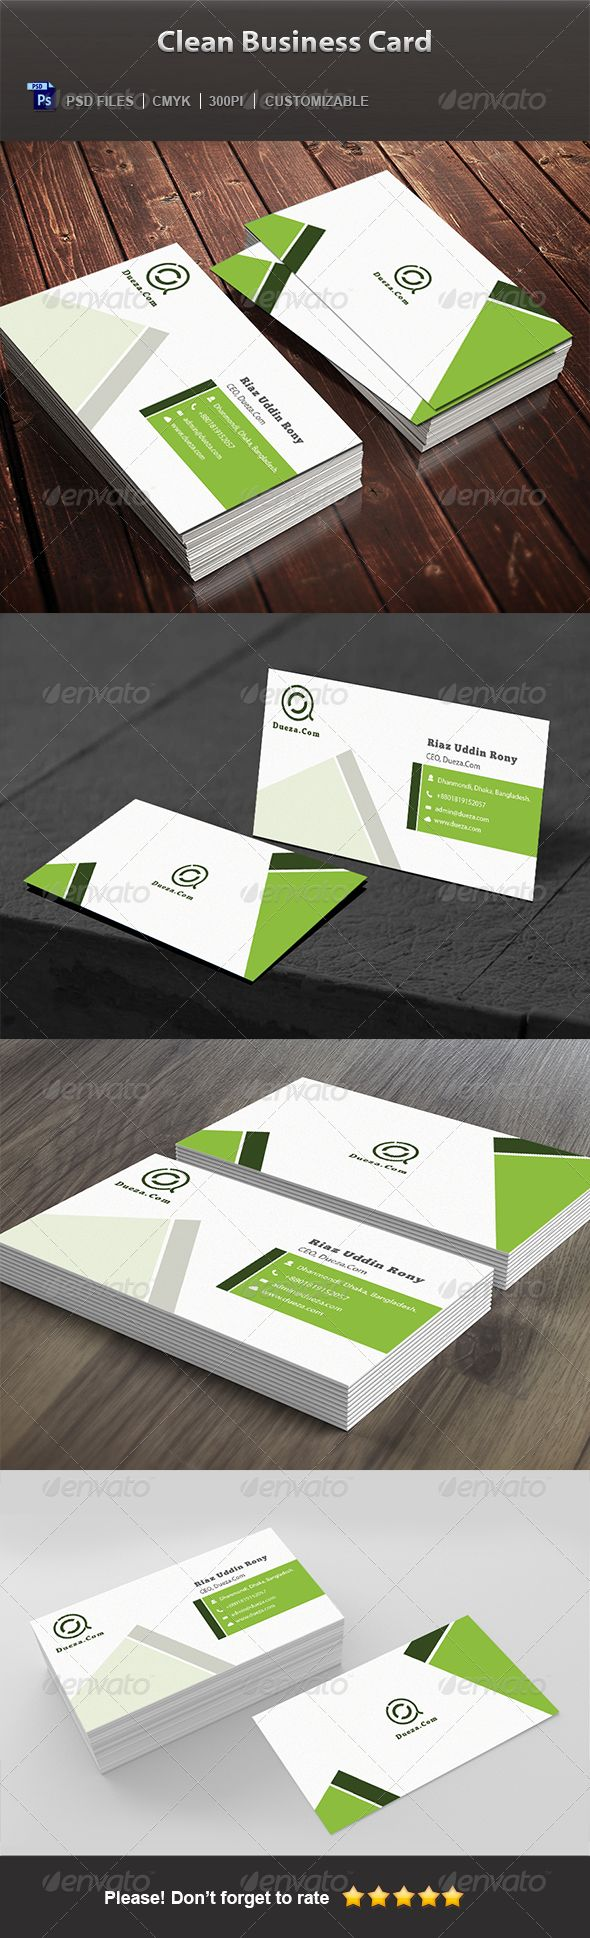 Best 25 cleaning business cards ideas on pinterest visit cards buy clean business card by graphicsdesignstudio on graphicriver clean business card is a simple and eye catching professional business card magicingreecefo Images